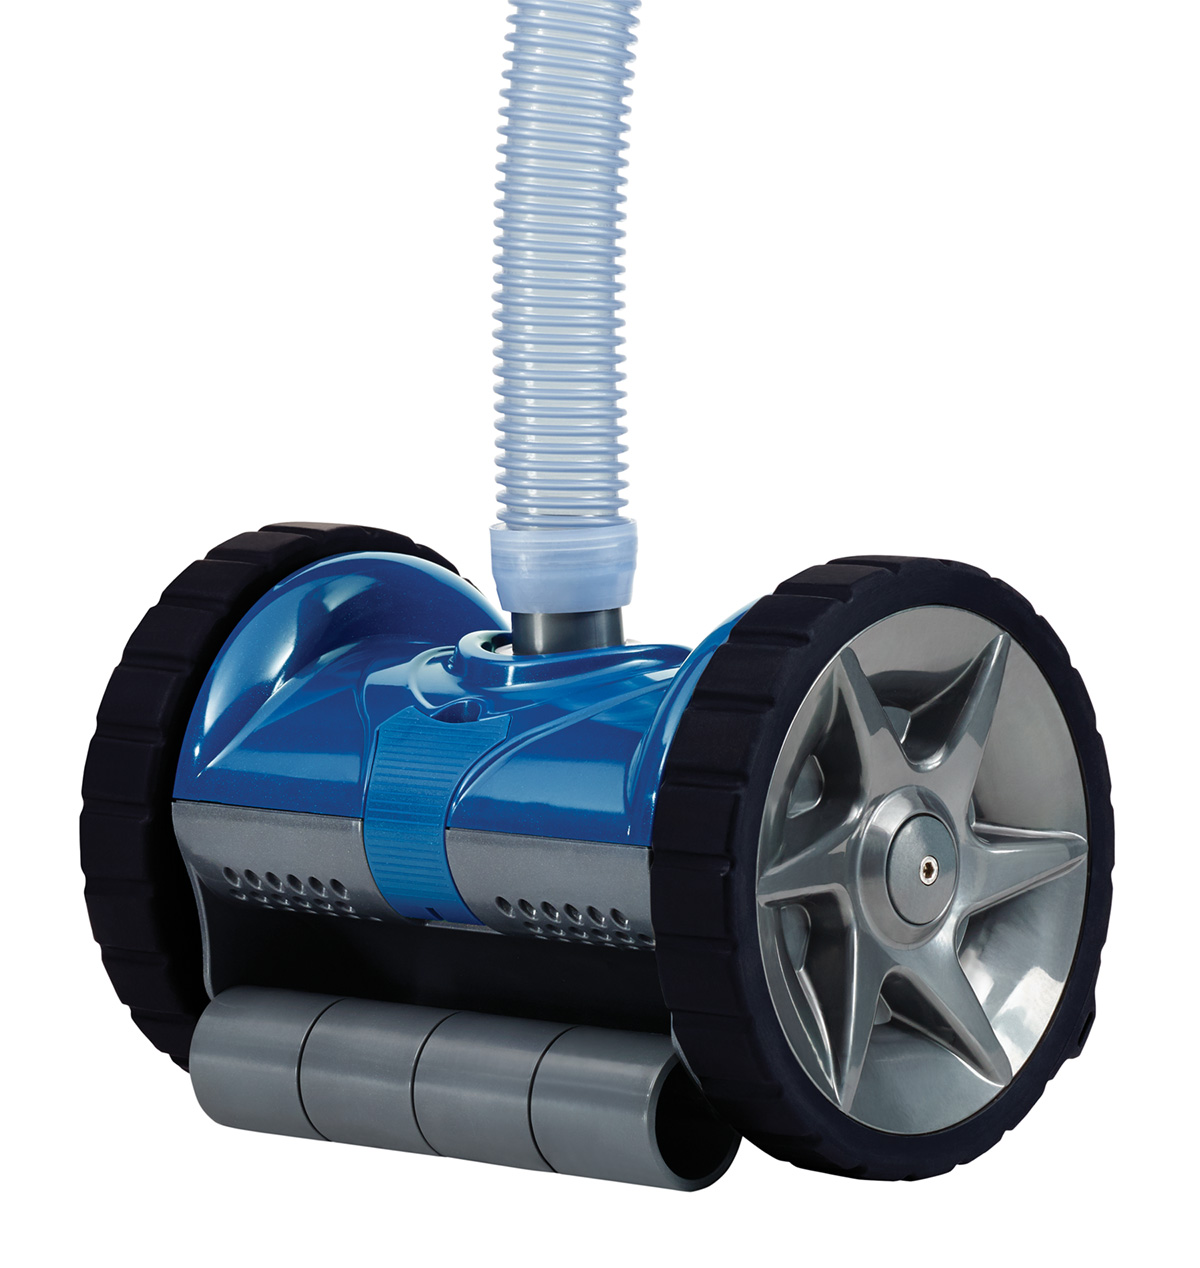 Pentair Rebel® Suction-side Inground Pool Cleaner - Suction Side